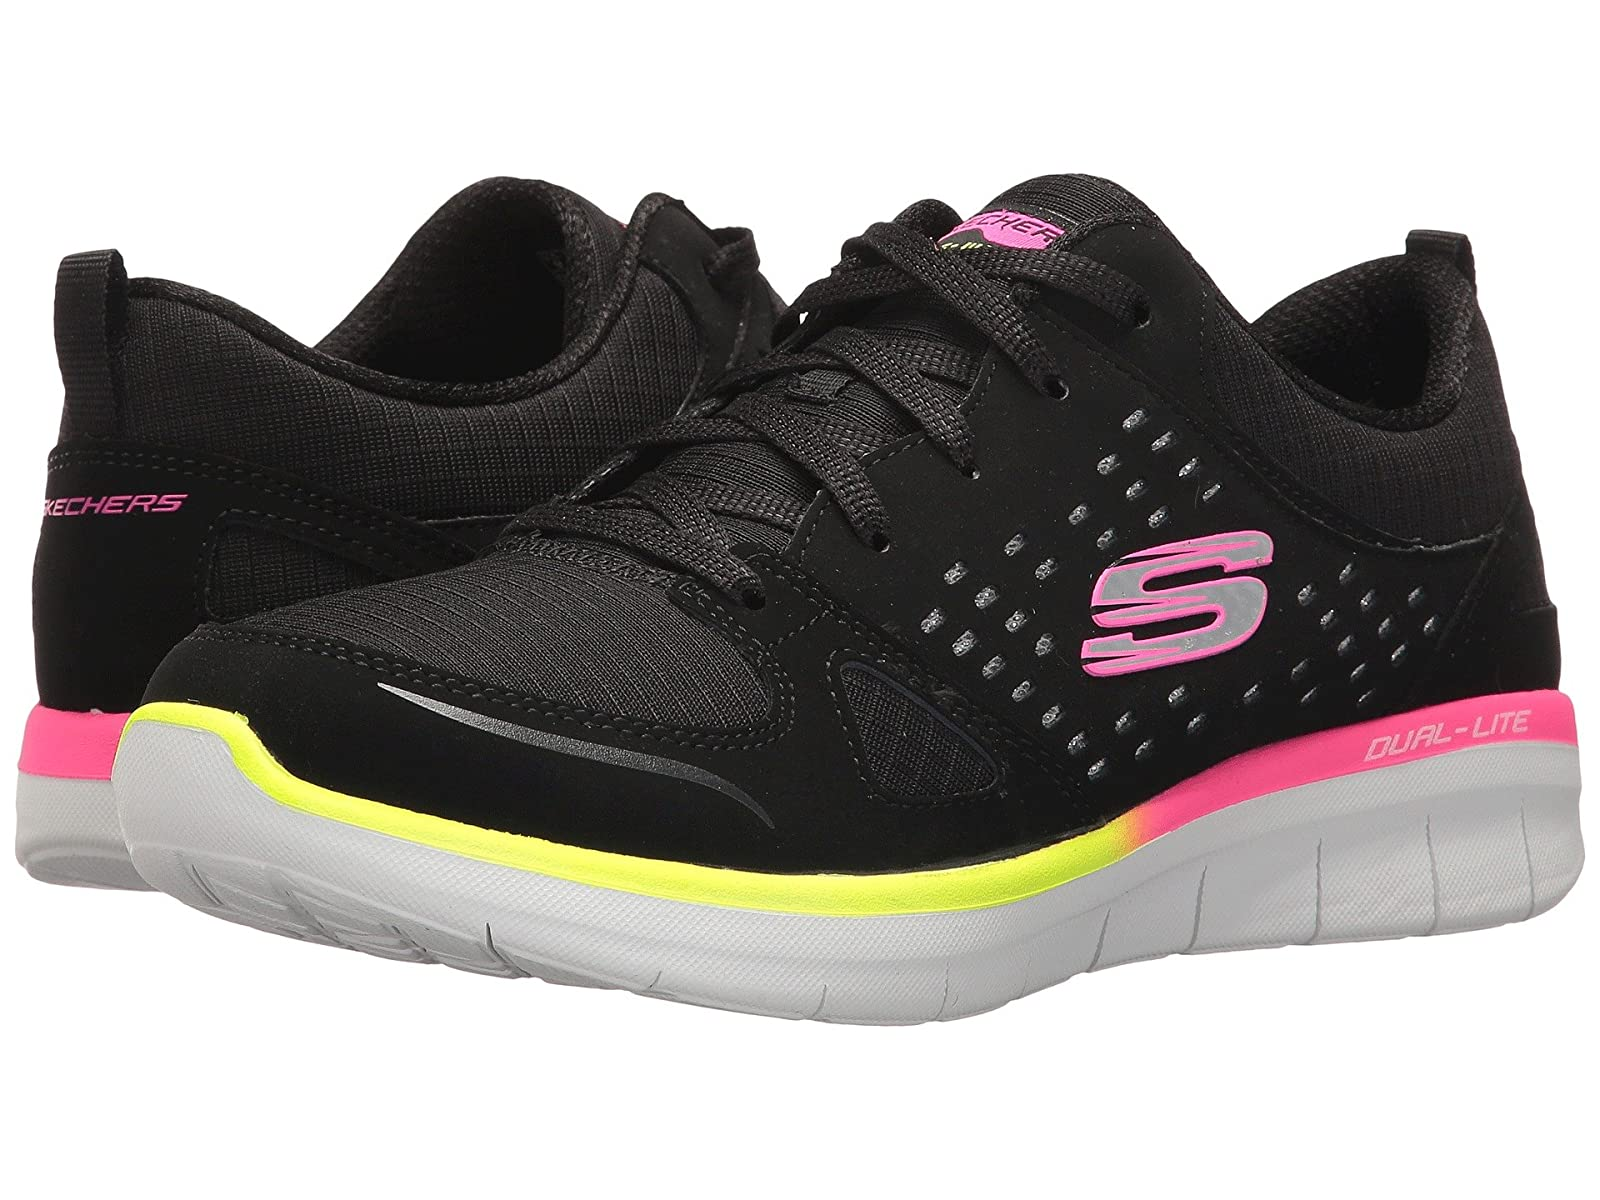 SKECHERS Synergy 2.0 - - 2.0 Rising Star dfe79a